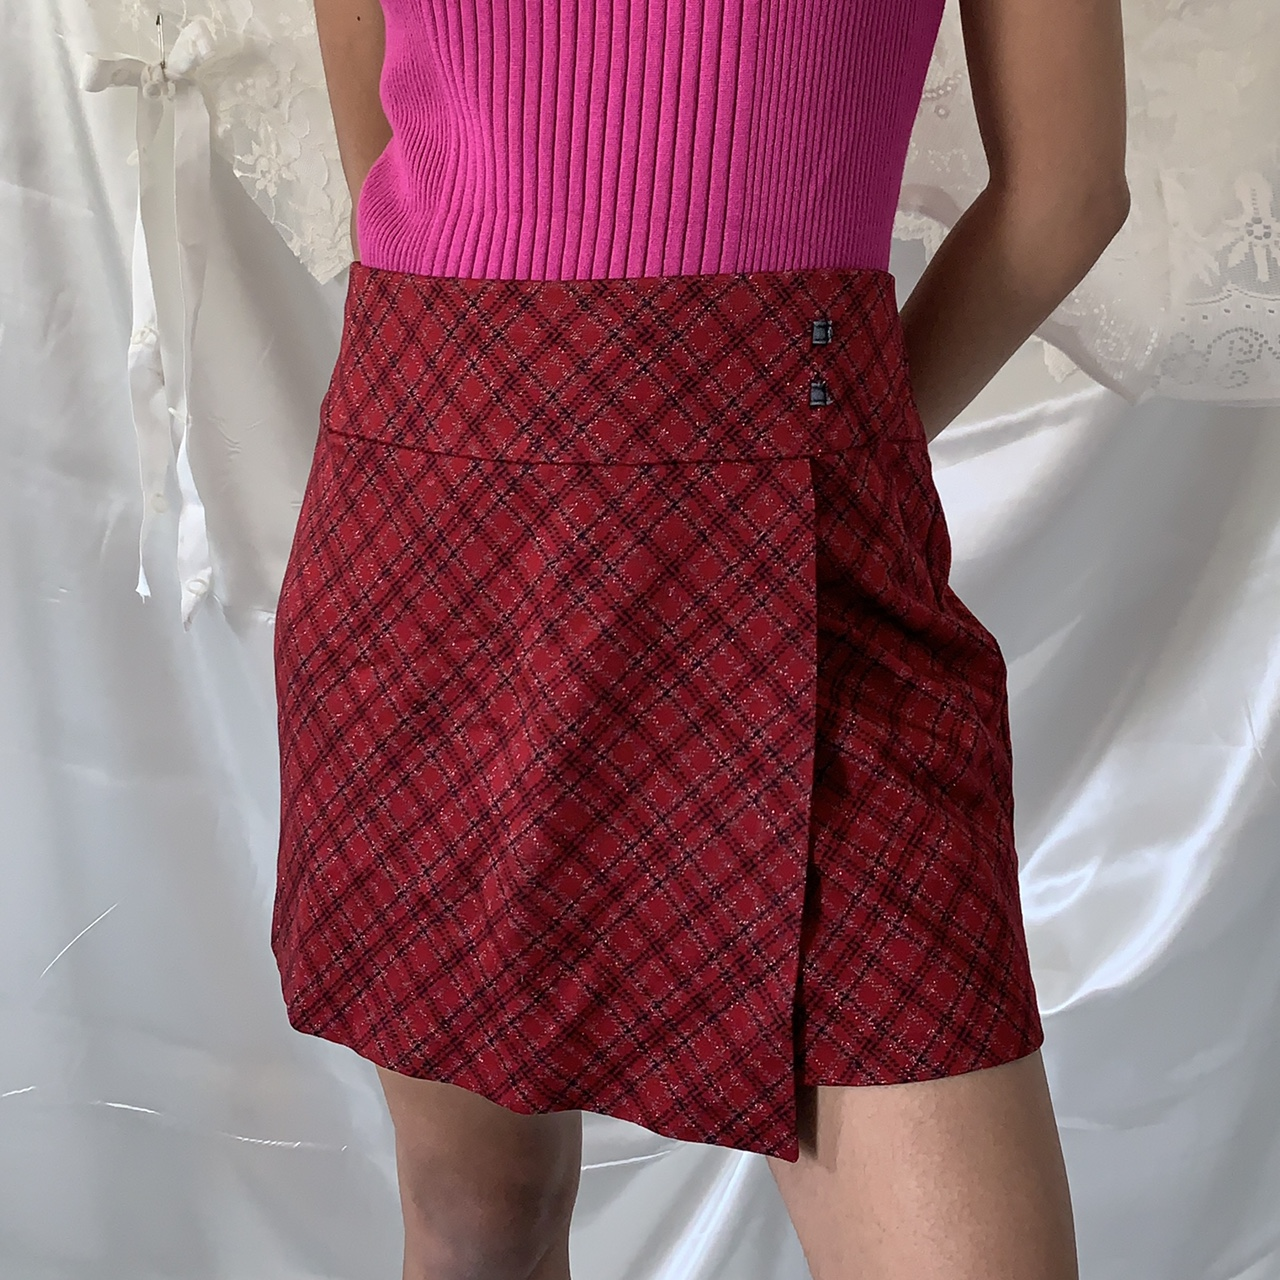 Product Image 1 - Red/pink plaid sparkly mini skirt